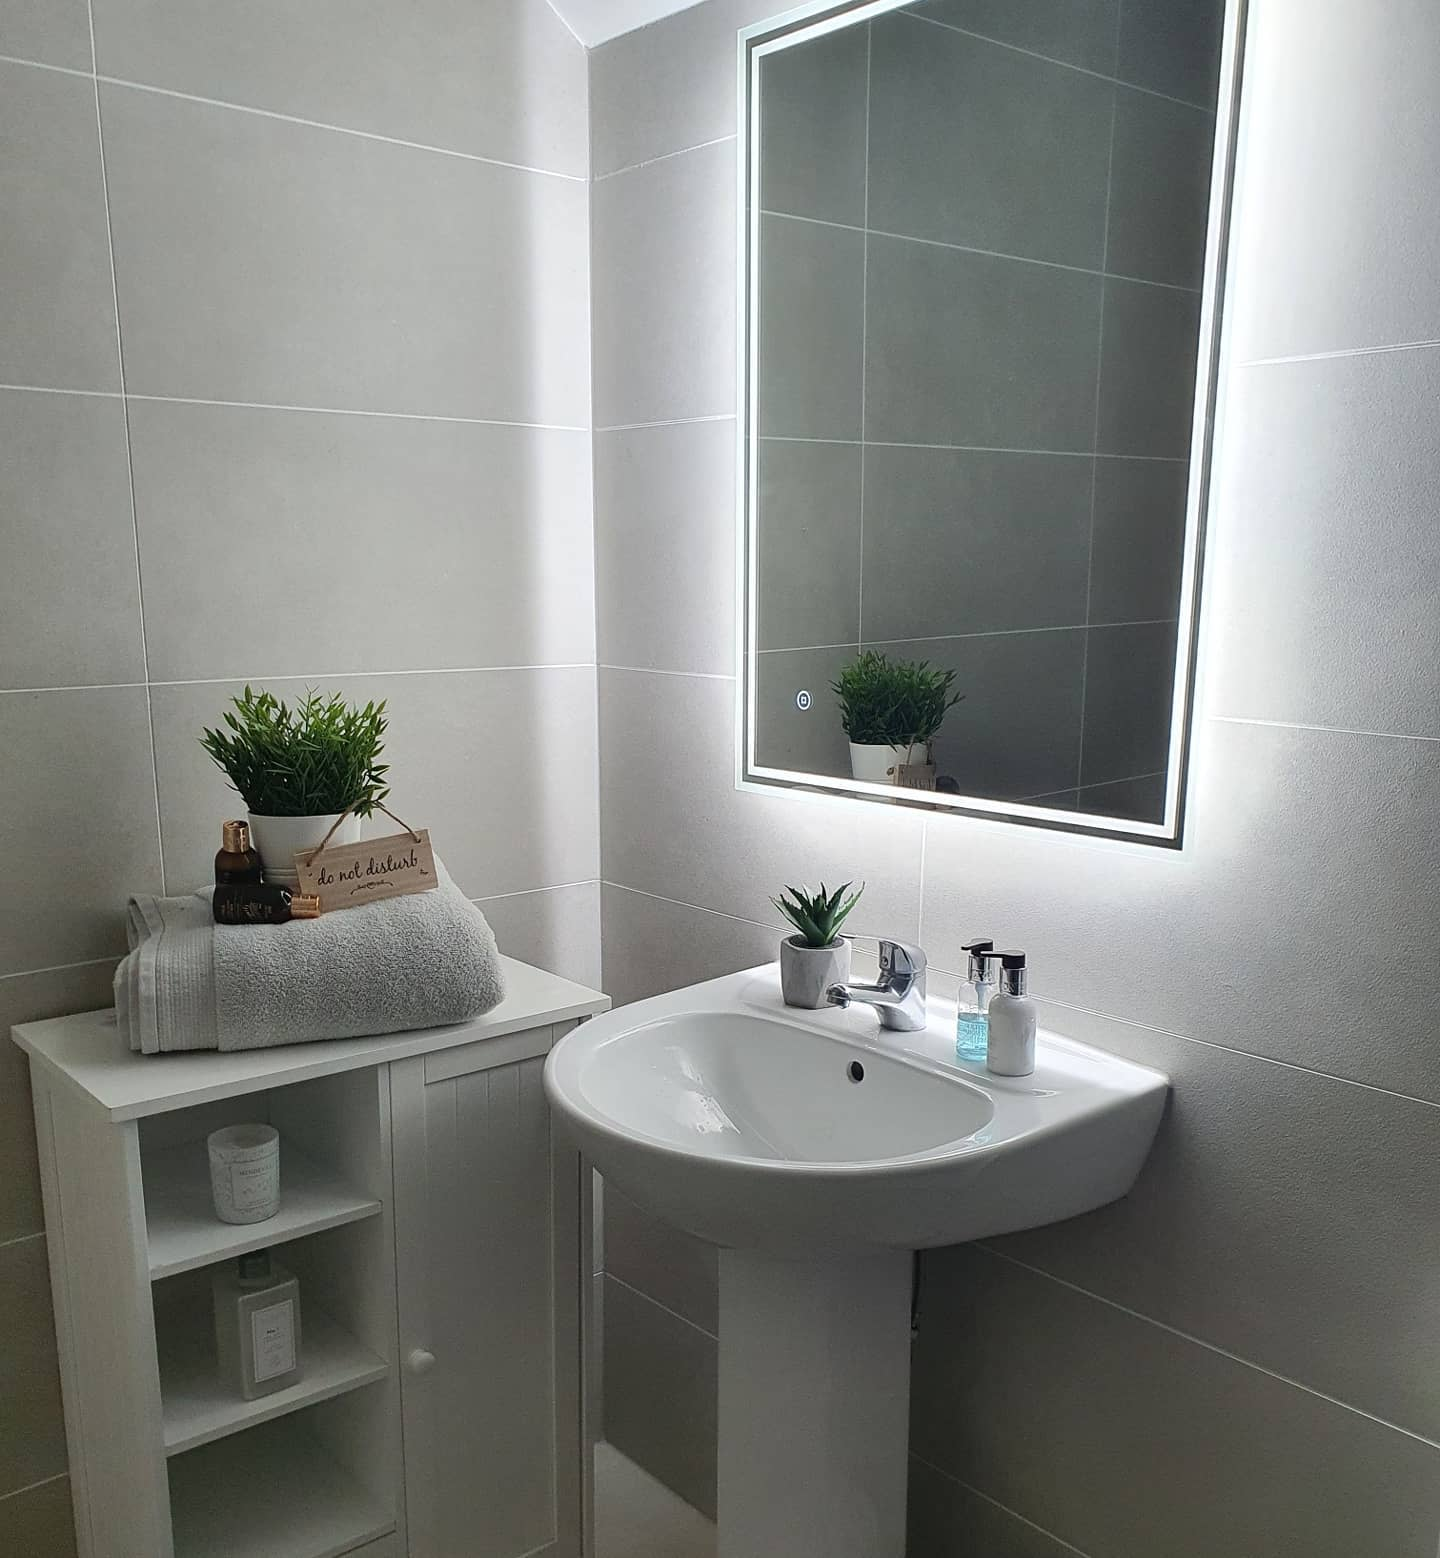 Mirror Bathroom Lighting Ideas -our_home_at_no_12